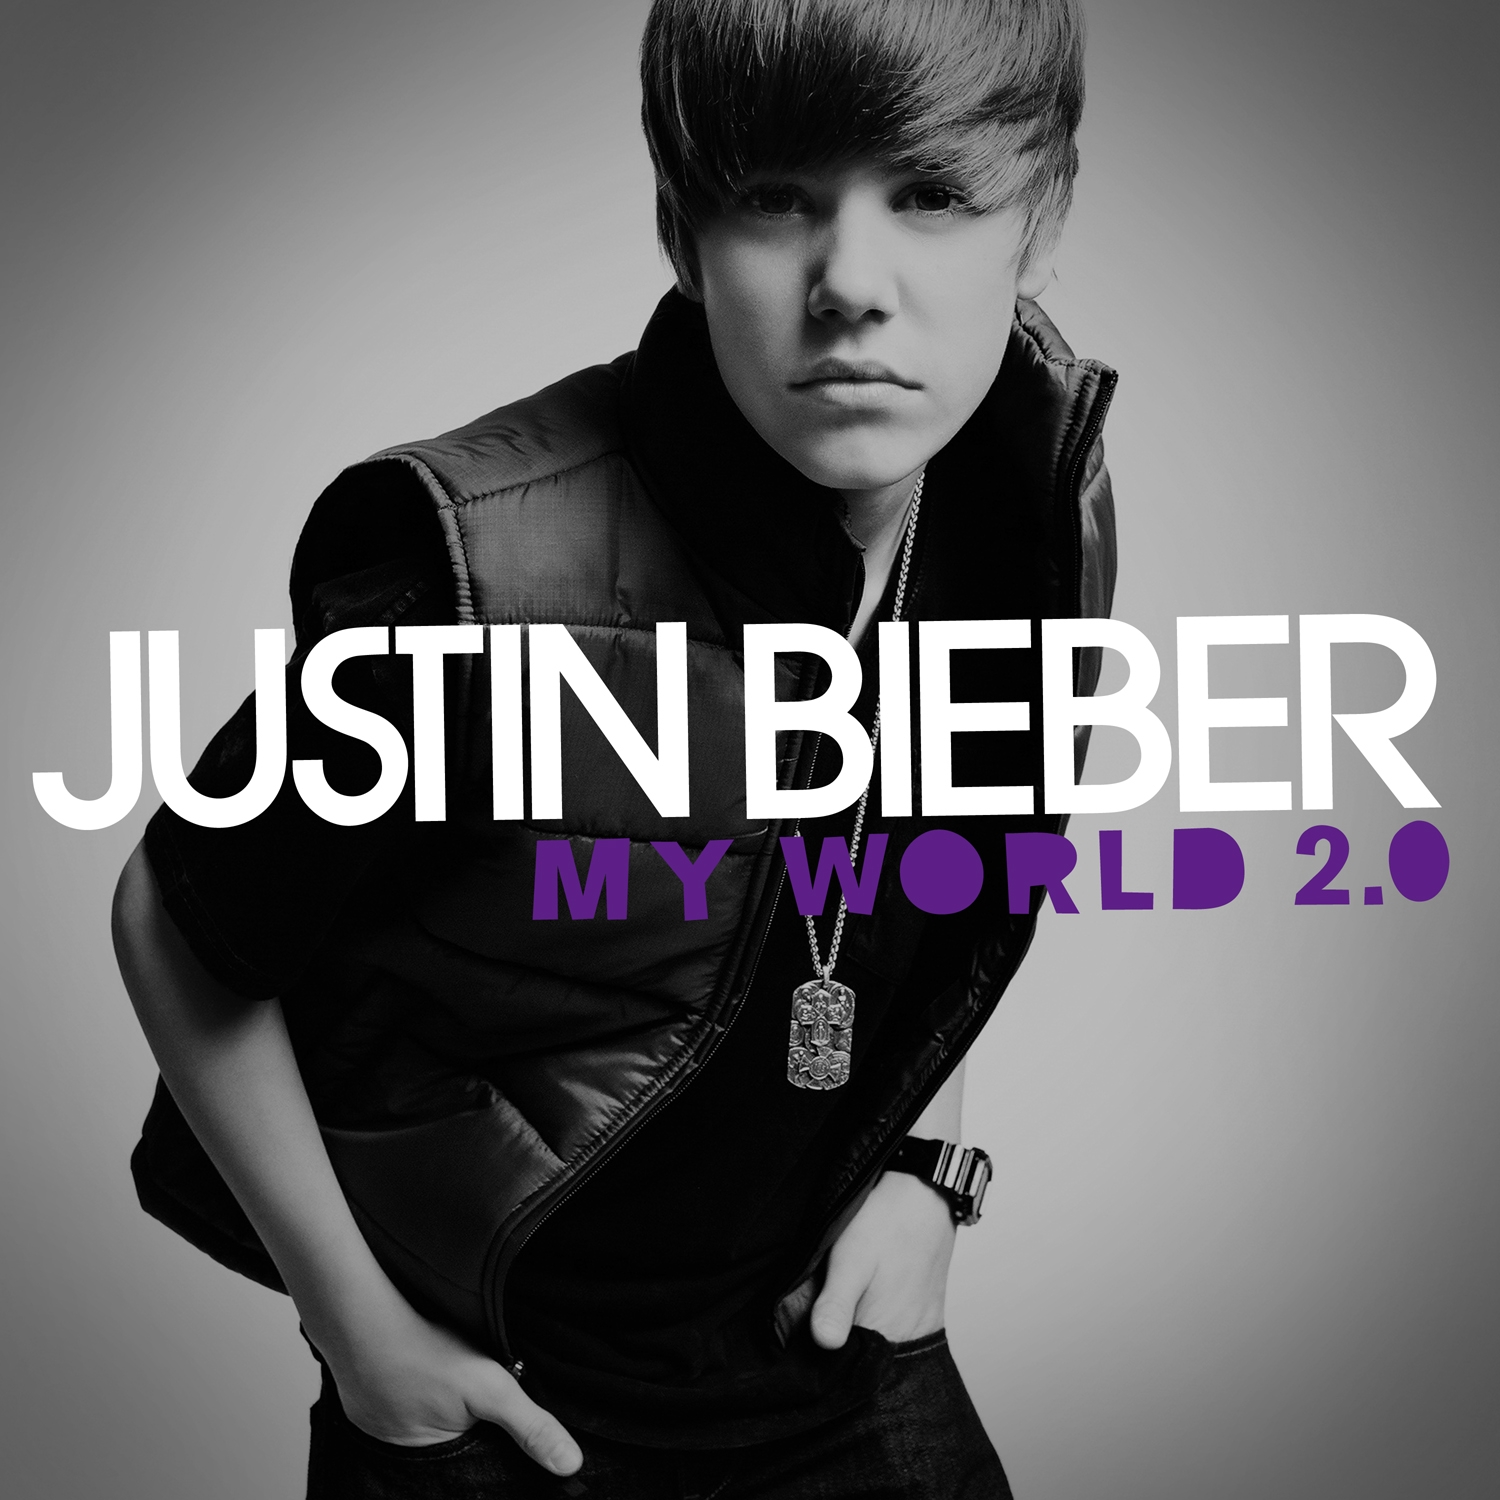 Let Me Love You Mp3 Song Download: Download Justin Bieber Album (My World 2.0) MP3